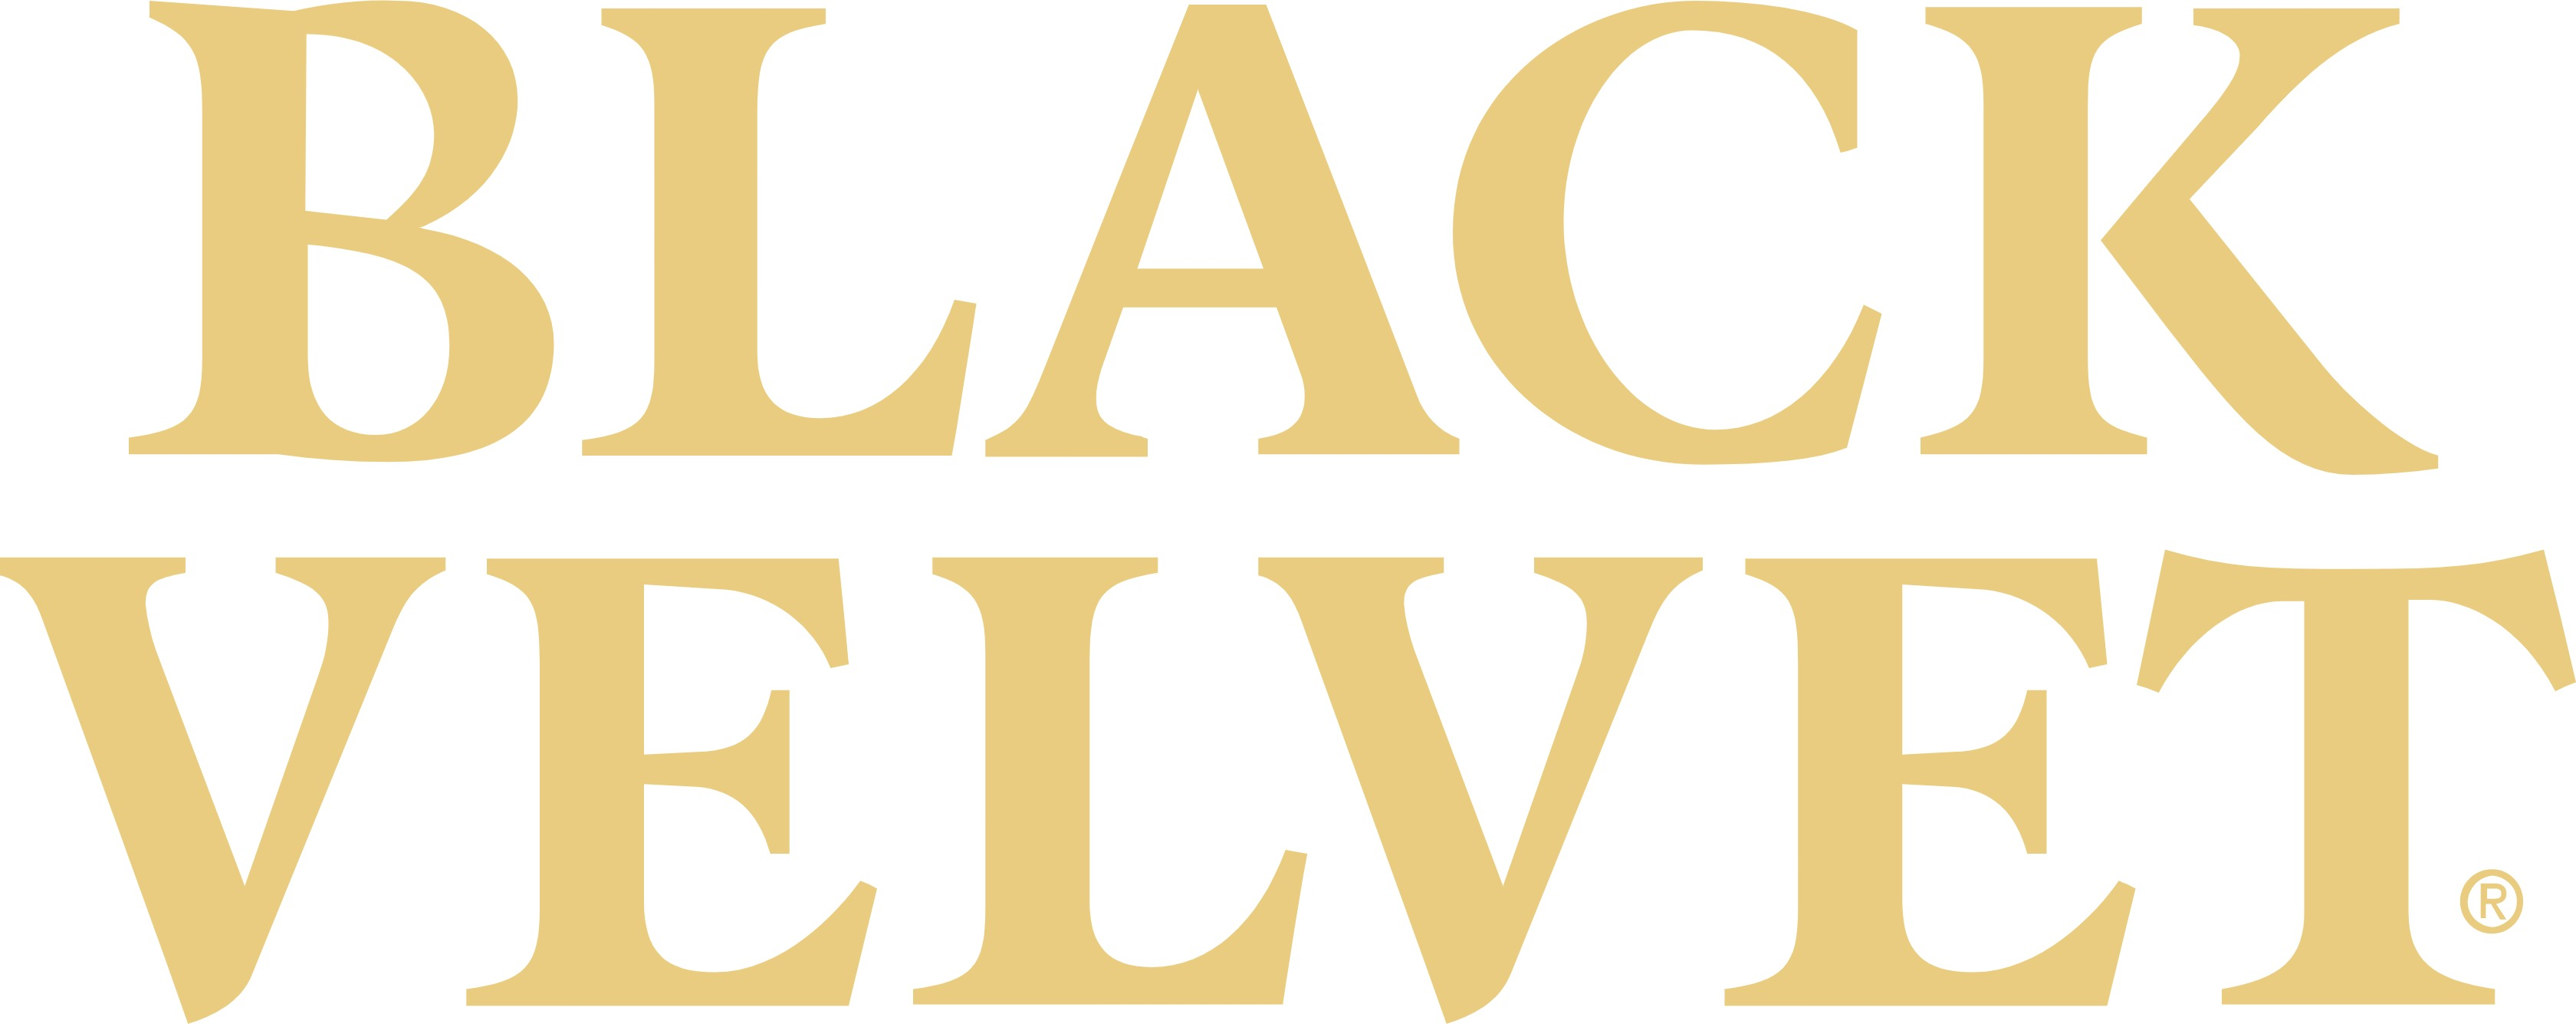 Black Velvet logo